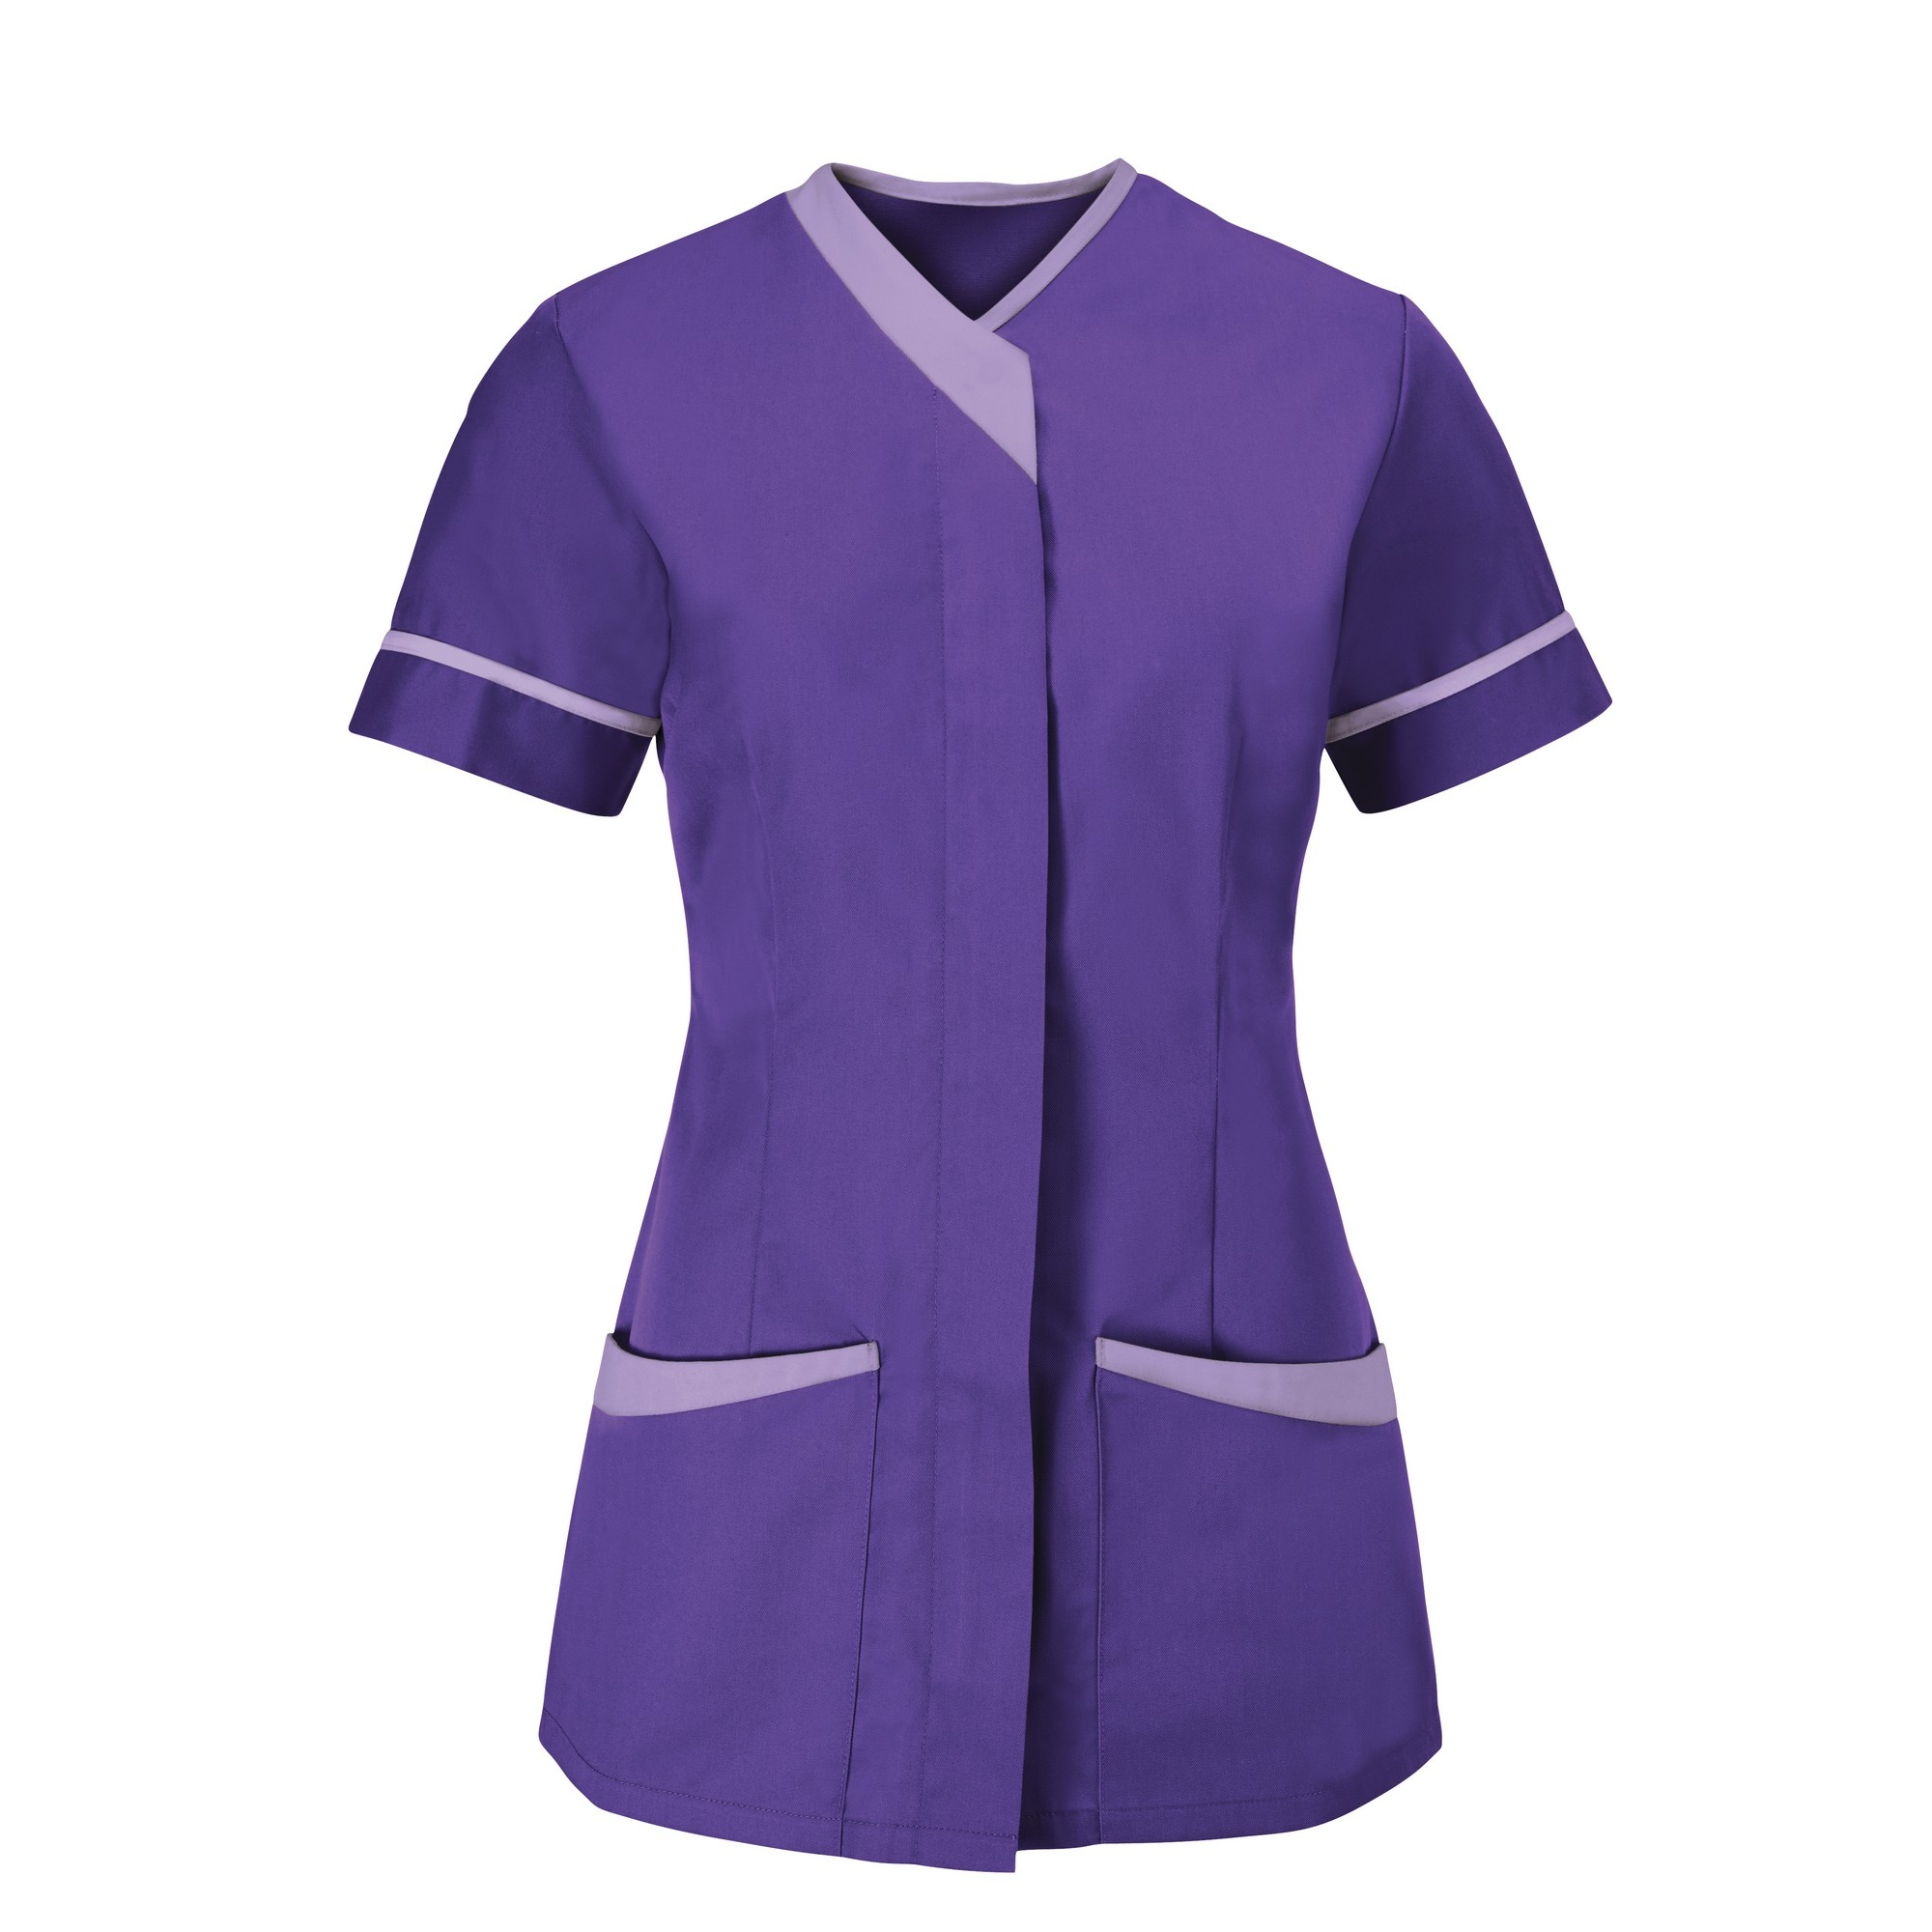 Alexandra Womens/Ladies Contrast Trim Medical/Healthcare Work Tunic (Pack of 2) (12) (Purple/Lilac)